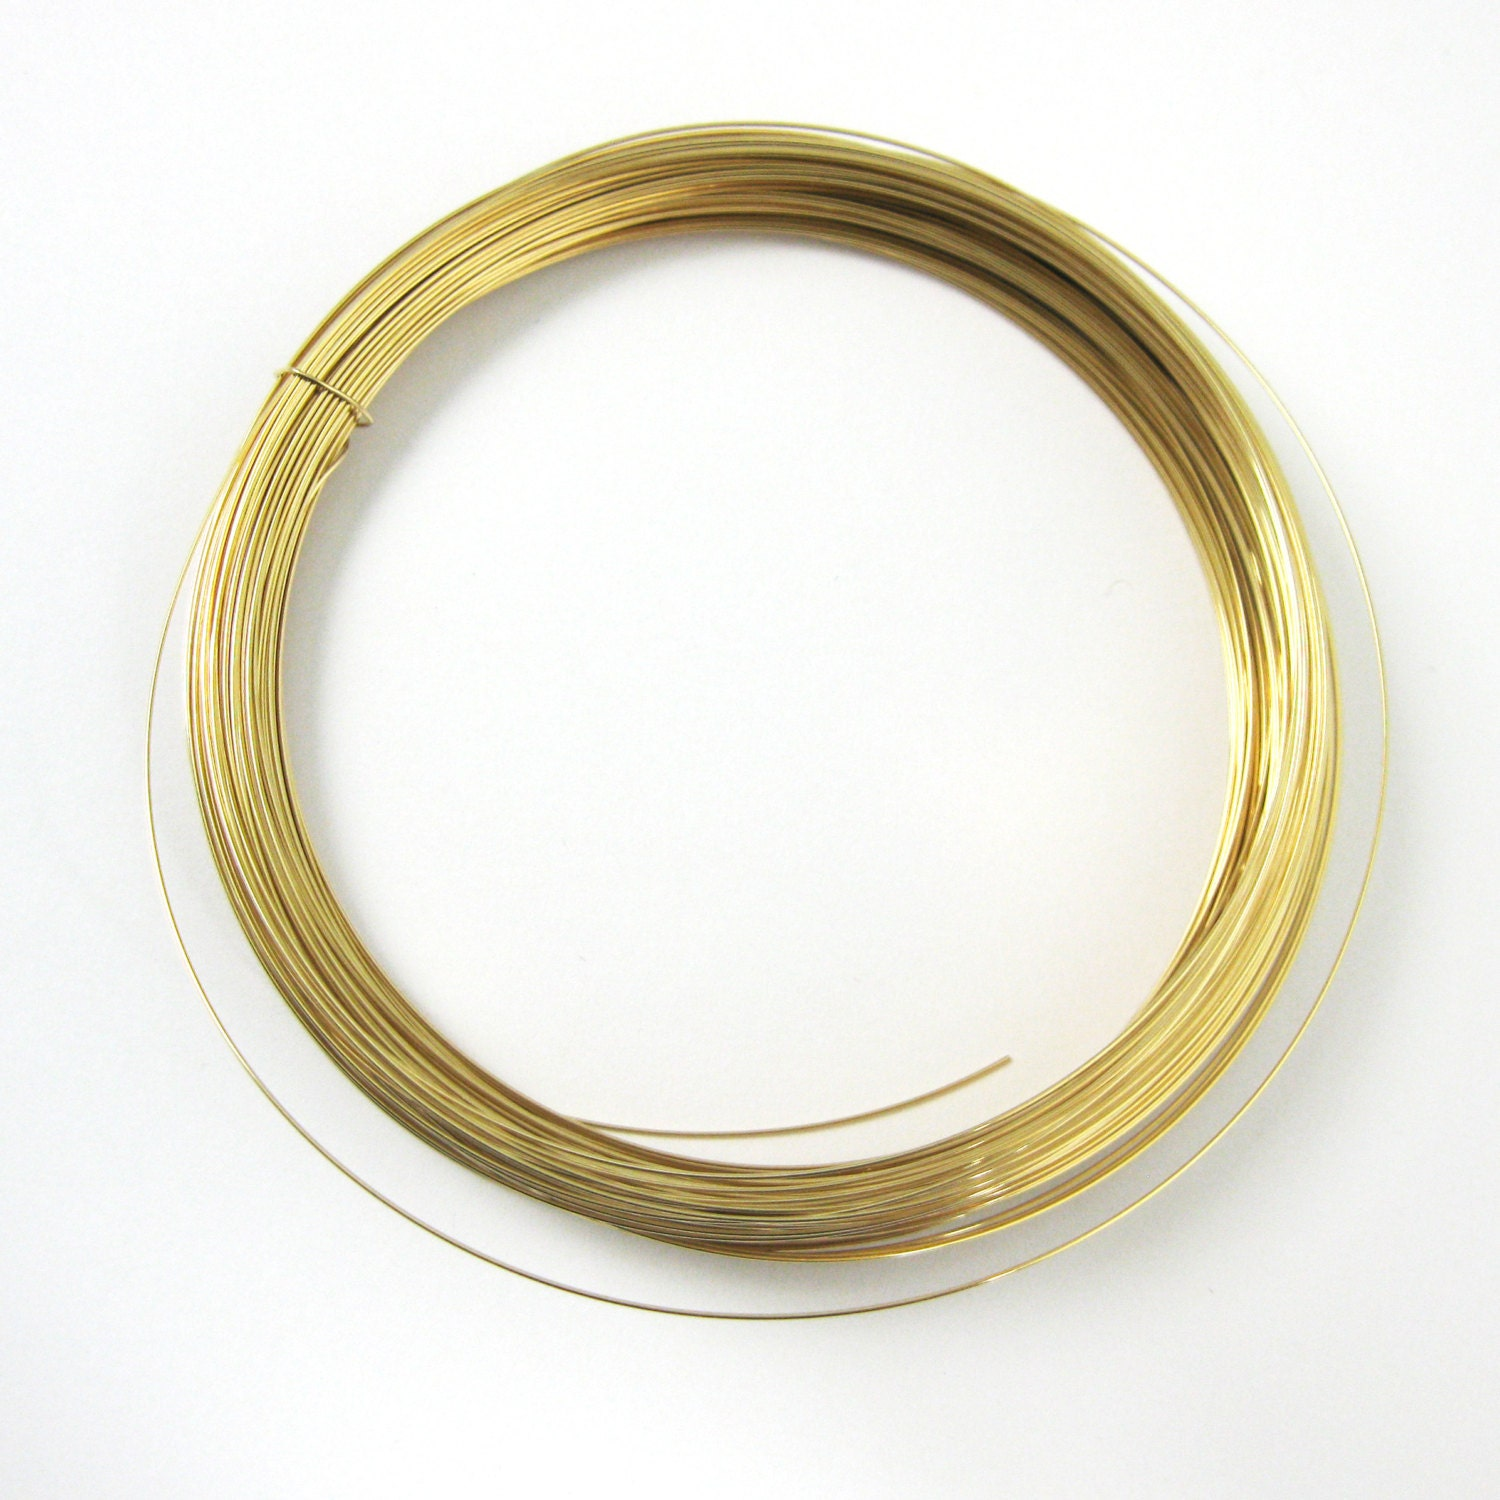 Gold Filled Wire. 24 Ga Half Hard Wire, 0.5mm Wire, Gold Filled ...